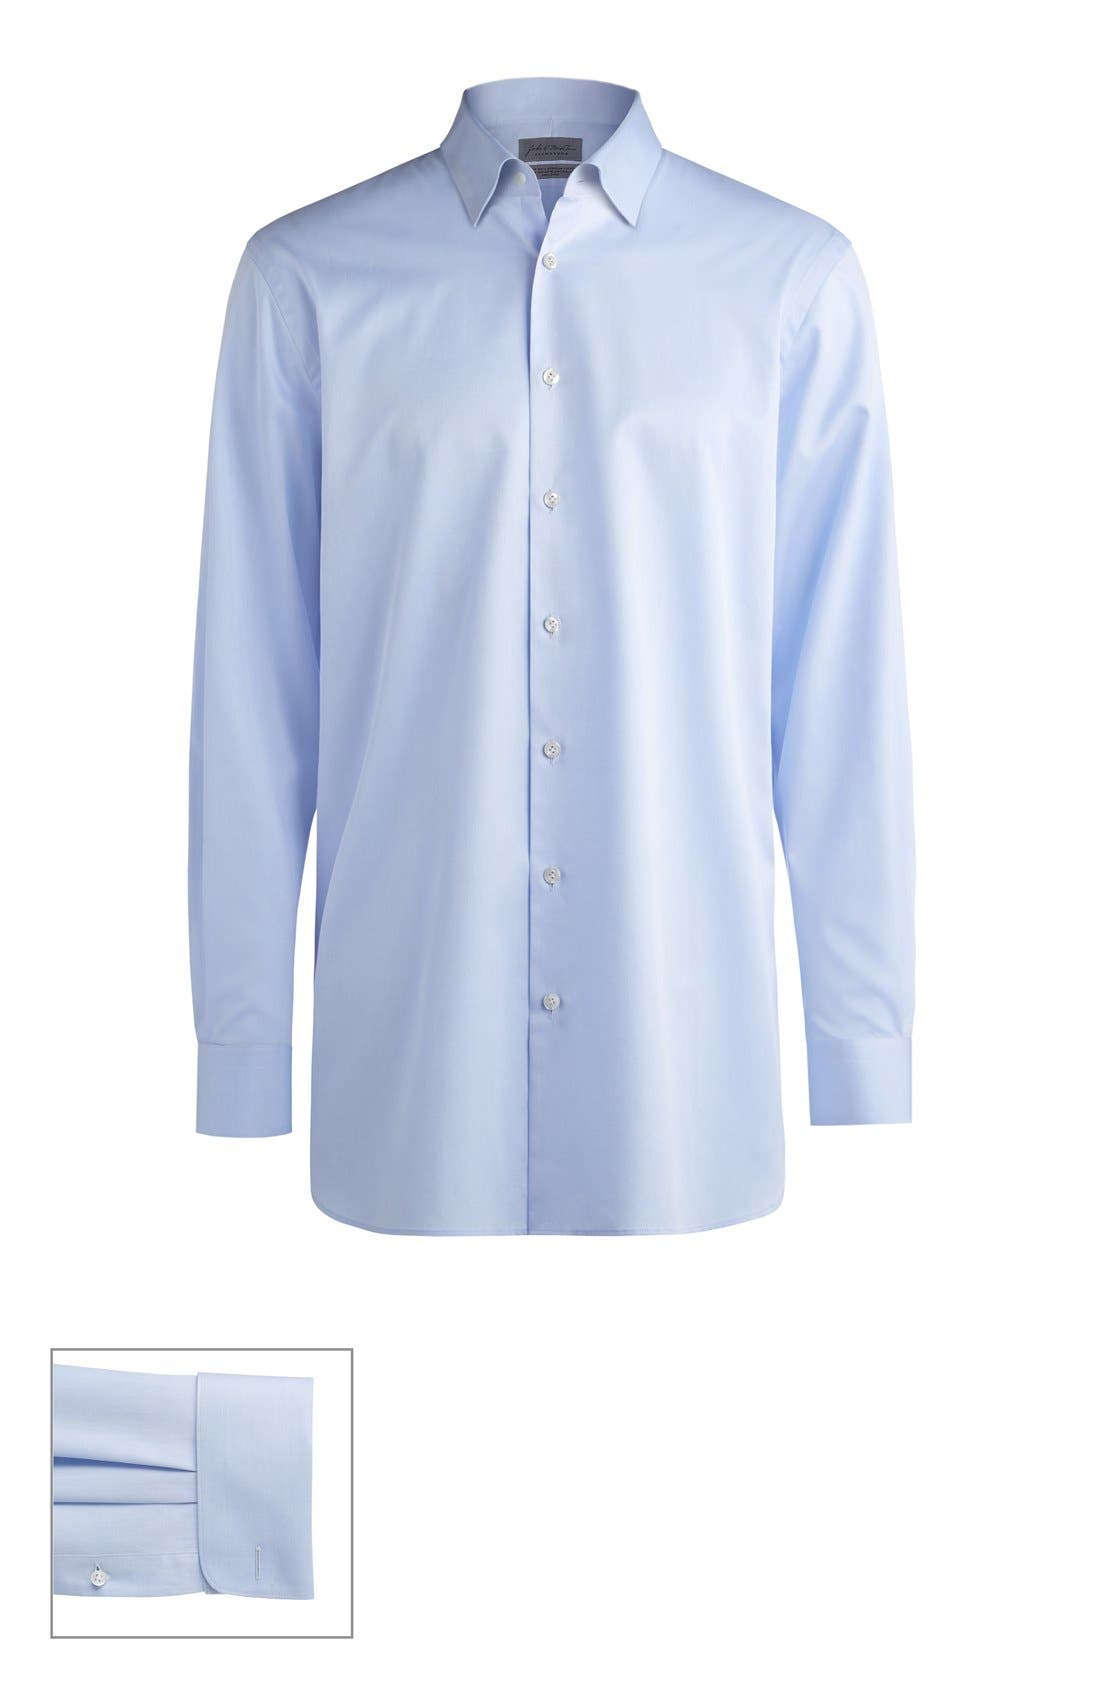 John W. Nordstrom® Made to Measure Trim Fit Straight Collar Solid Dress Shirt